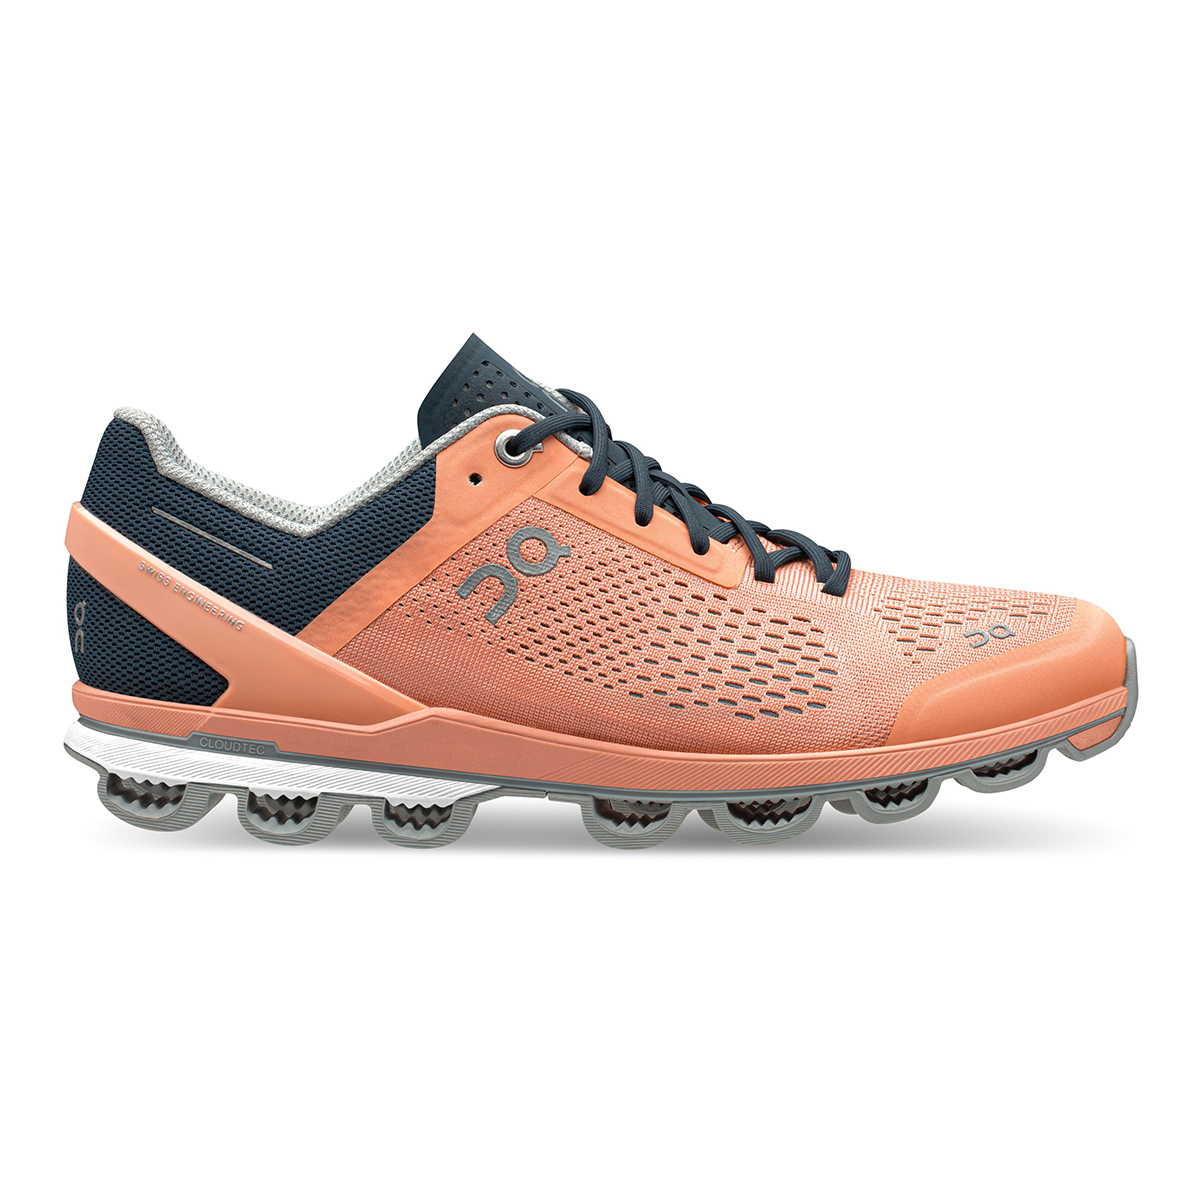 Women's On Cloudsurfer Running Shoe - Color: Coral/Navy - Size: 5 - Width: Regular, Coral/Navy, large, image 1